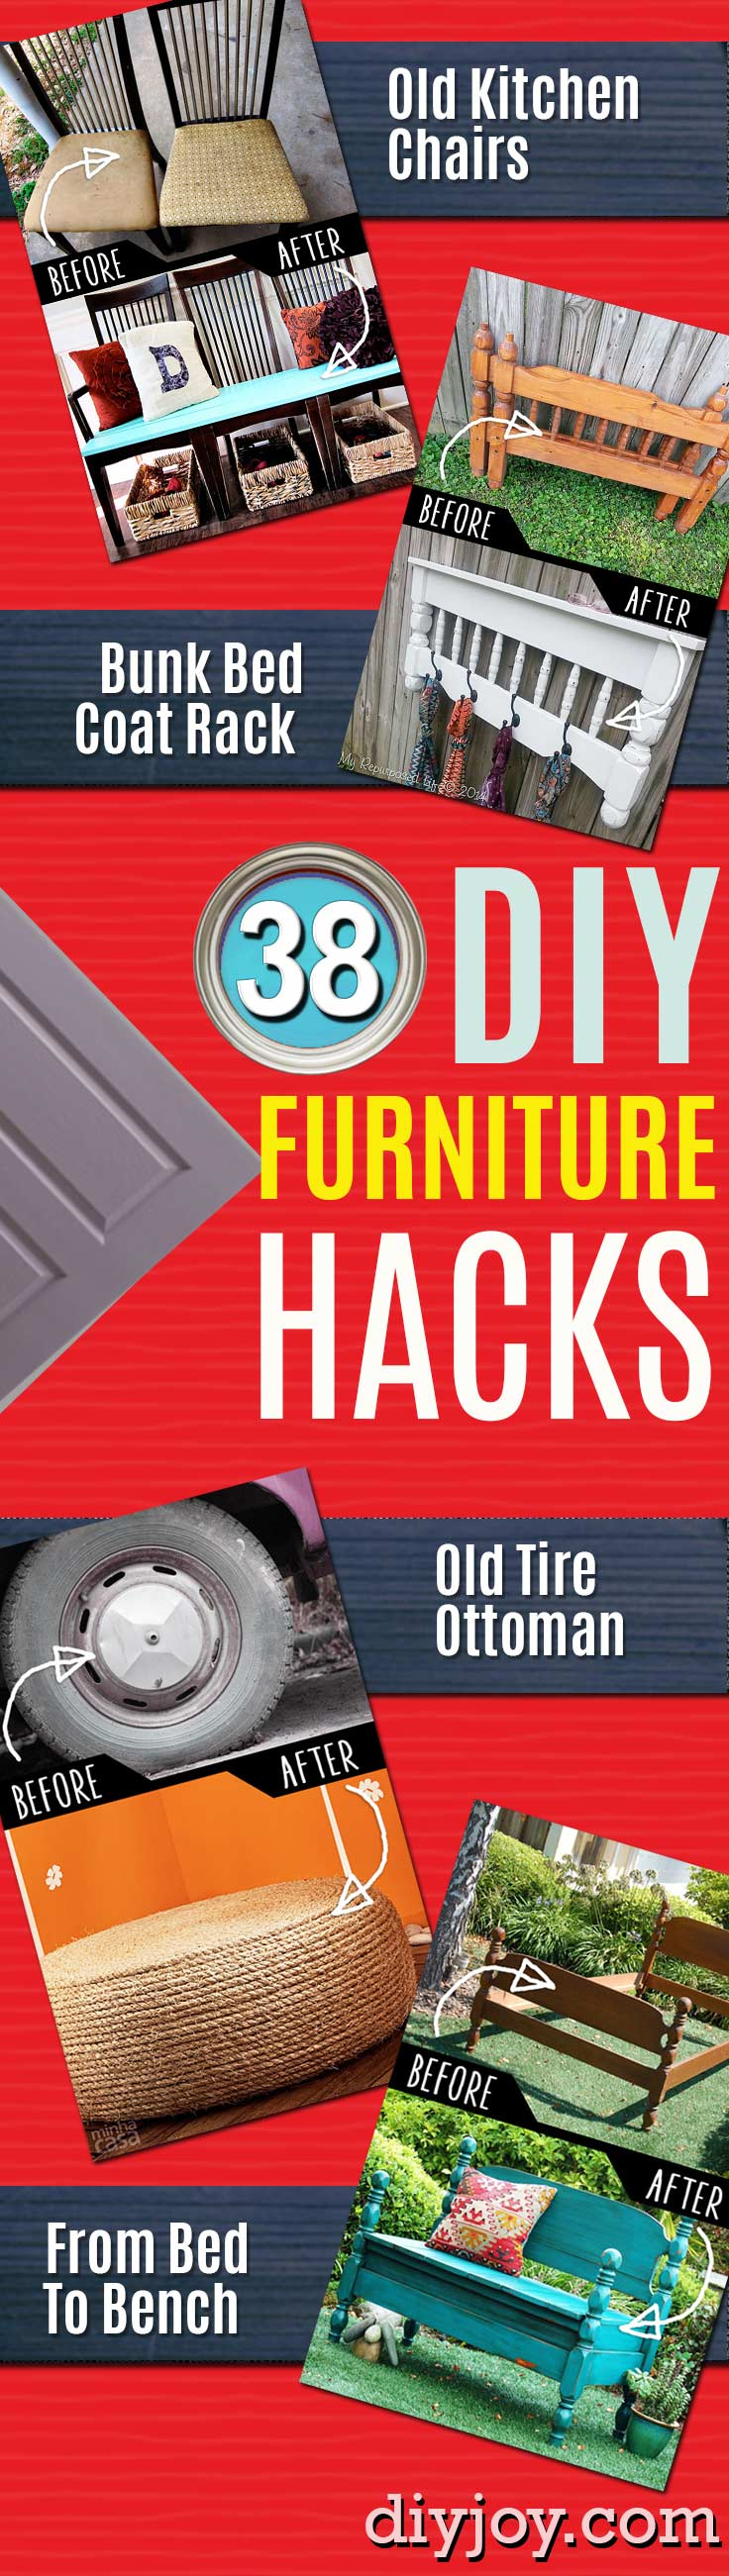 DIY Furniture Hacks and Cool Ideas for Repurposing Stuff for Home Decor. IKEA hacks and ideas for creative decorating. - Easy Hacks for Transforming Old Furniture on The Cheap - Quick Ideas for Creative Home Decor